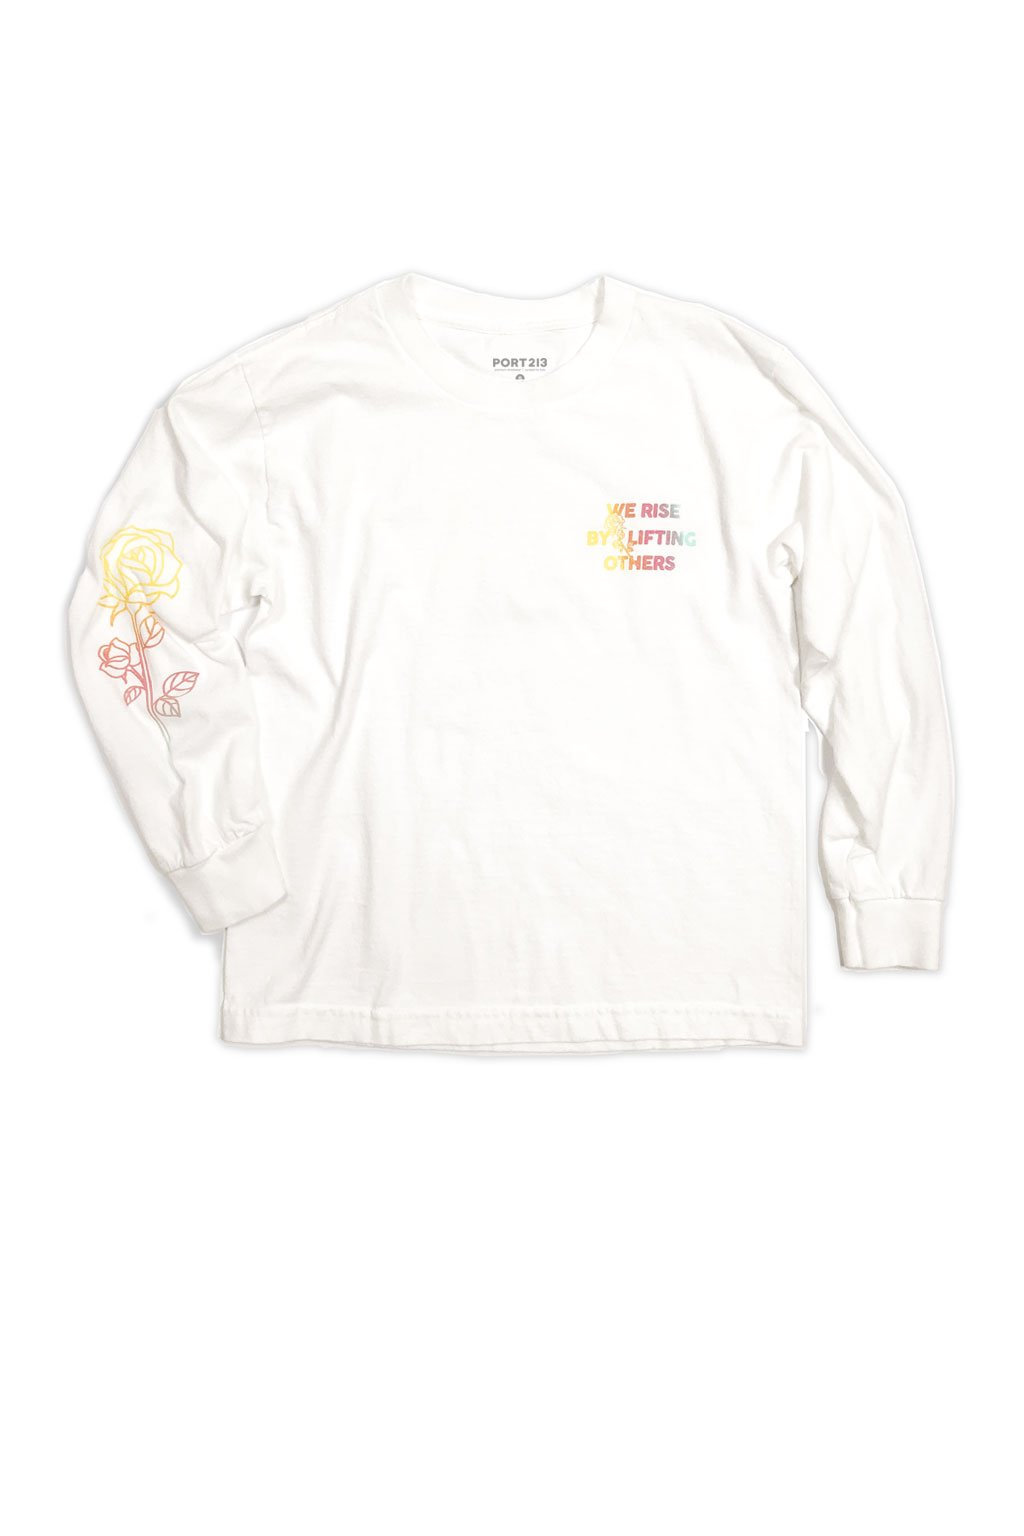 White Ombre Long Sleeve T-shirt - Port 213.com